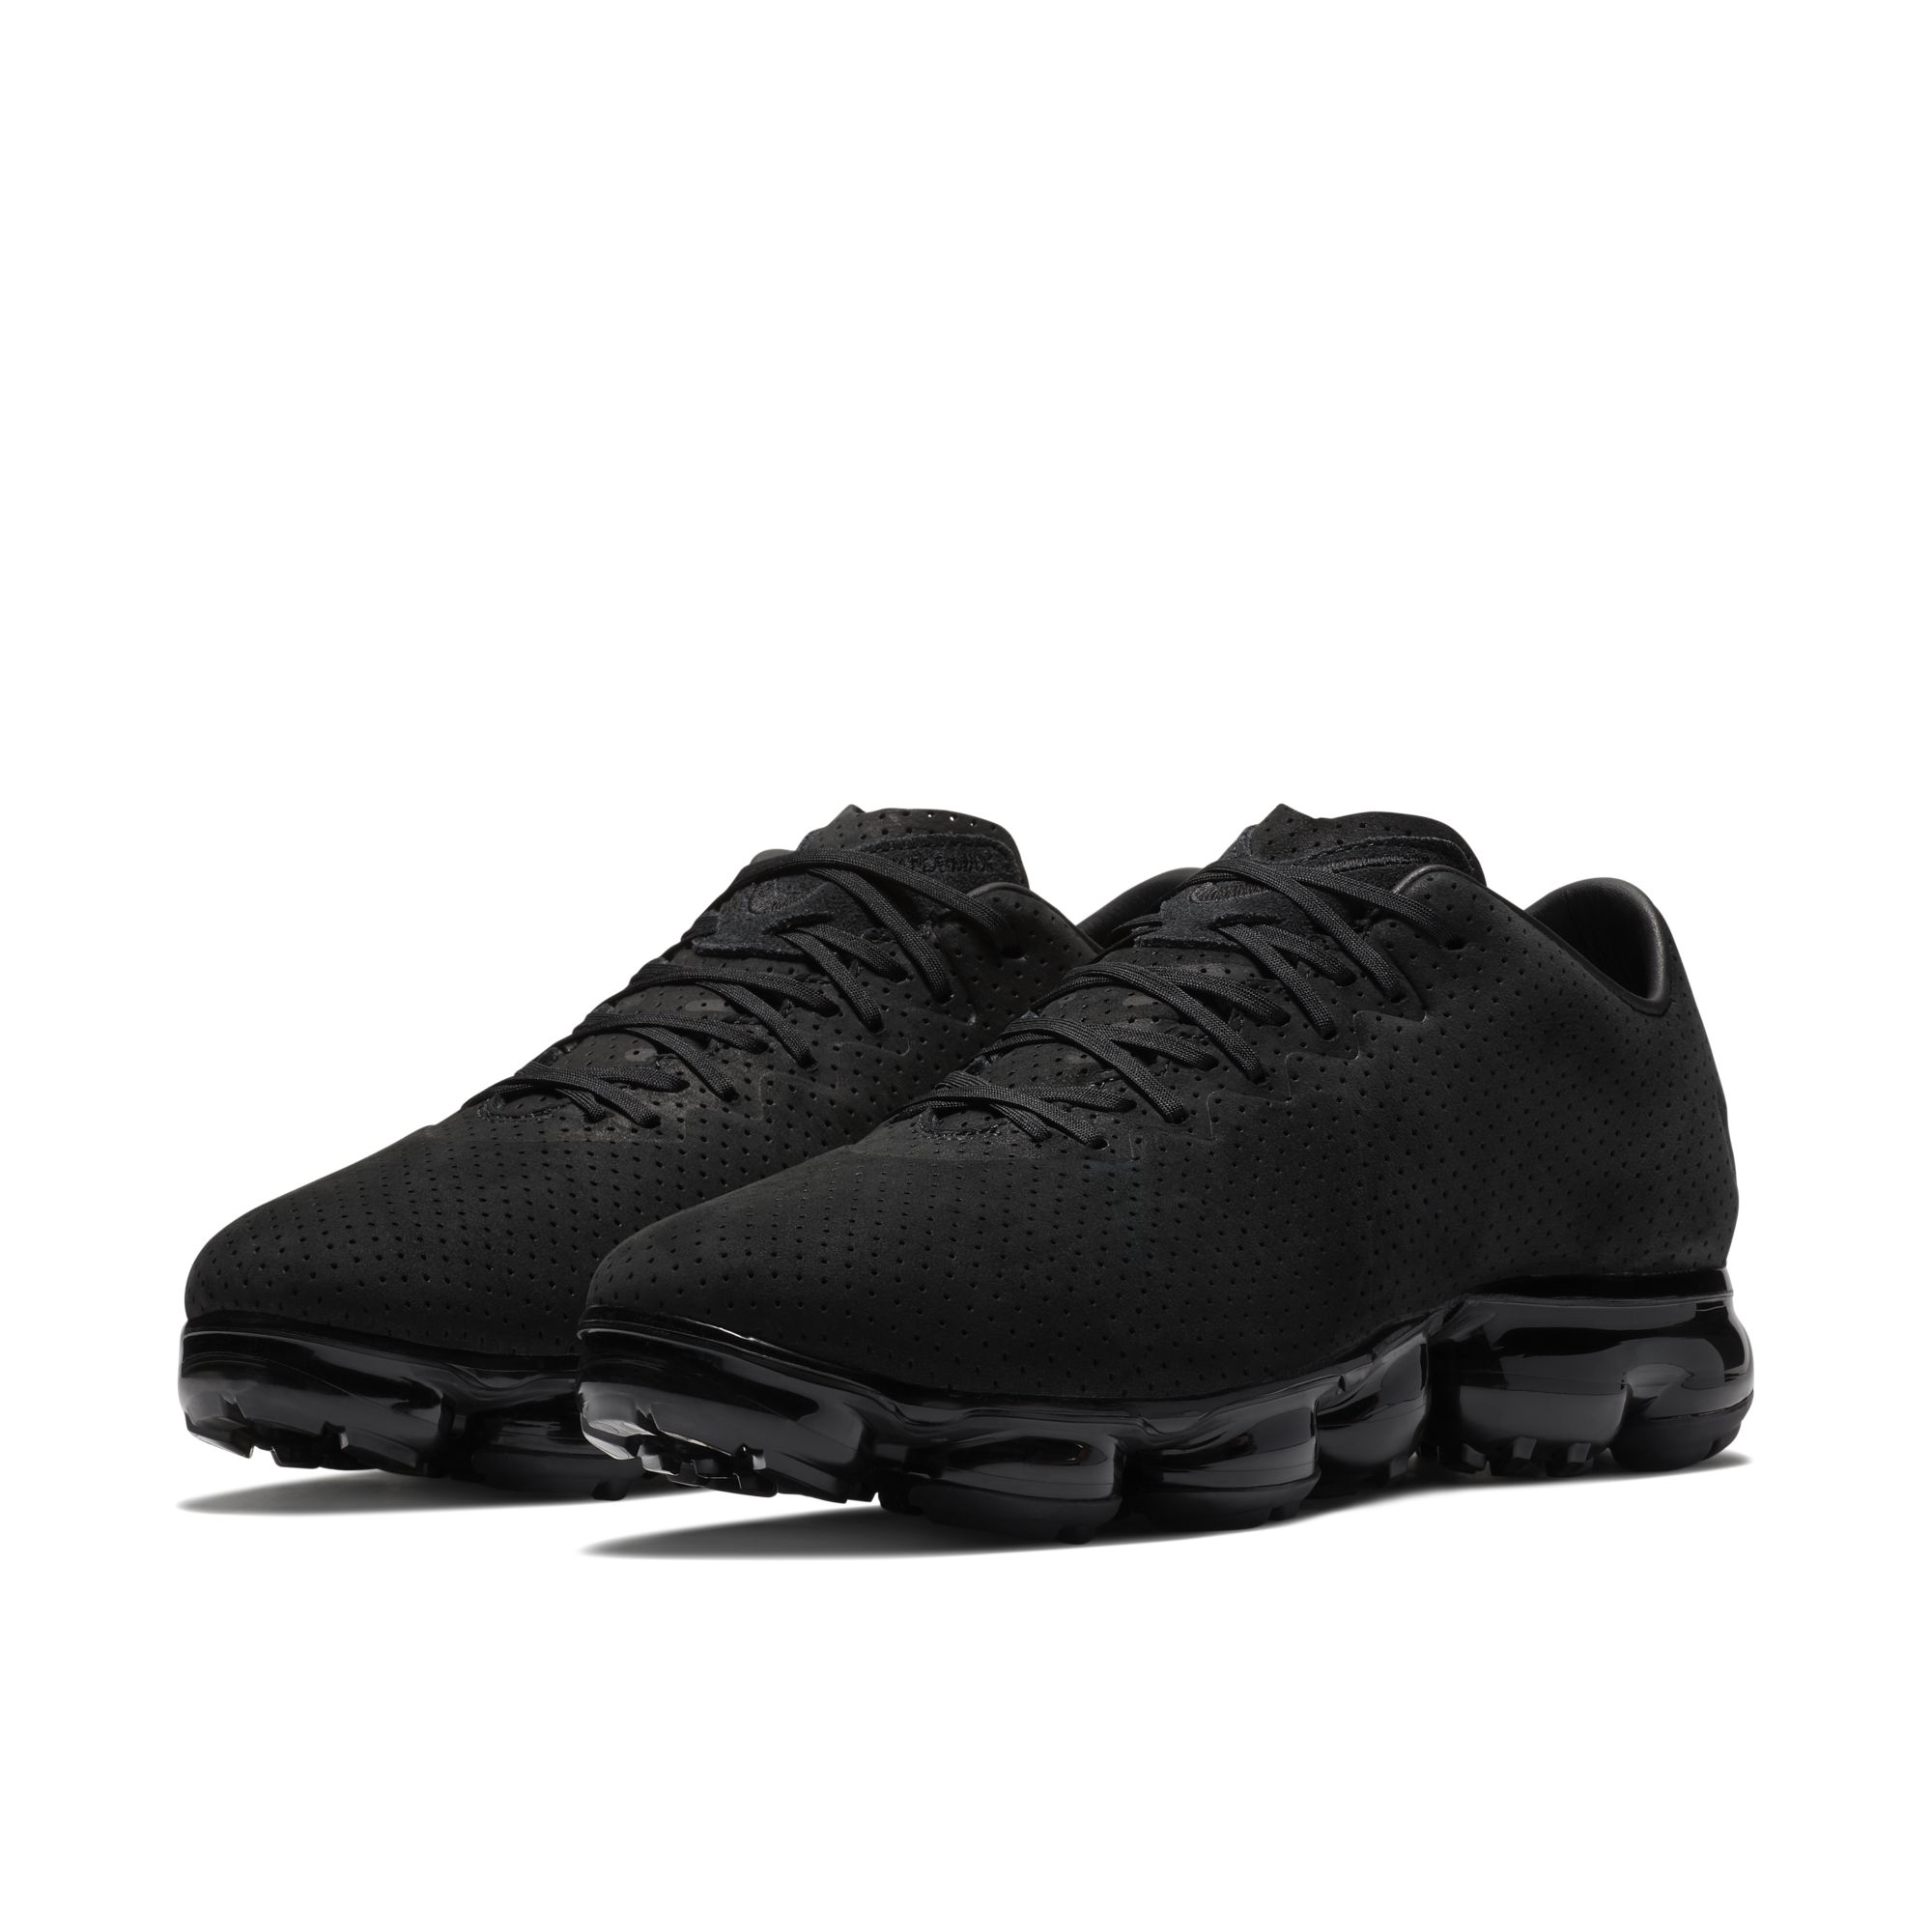 The Nike Air Vapormax Leather Surfaces